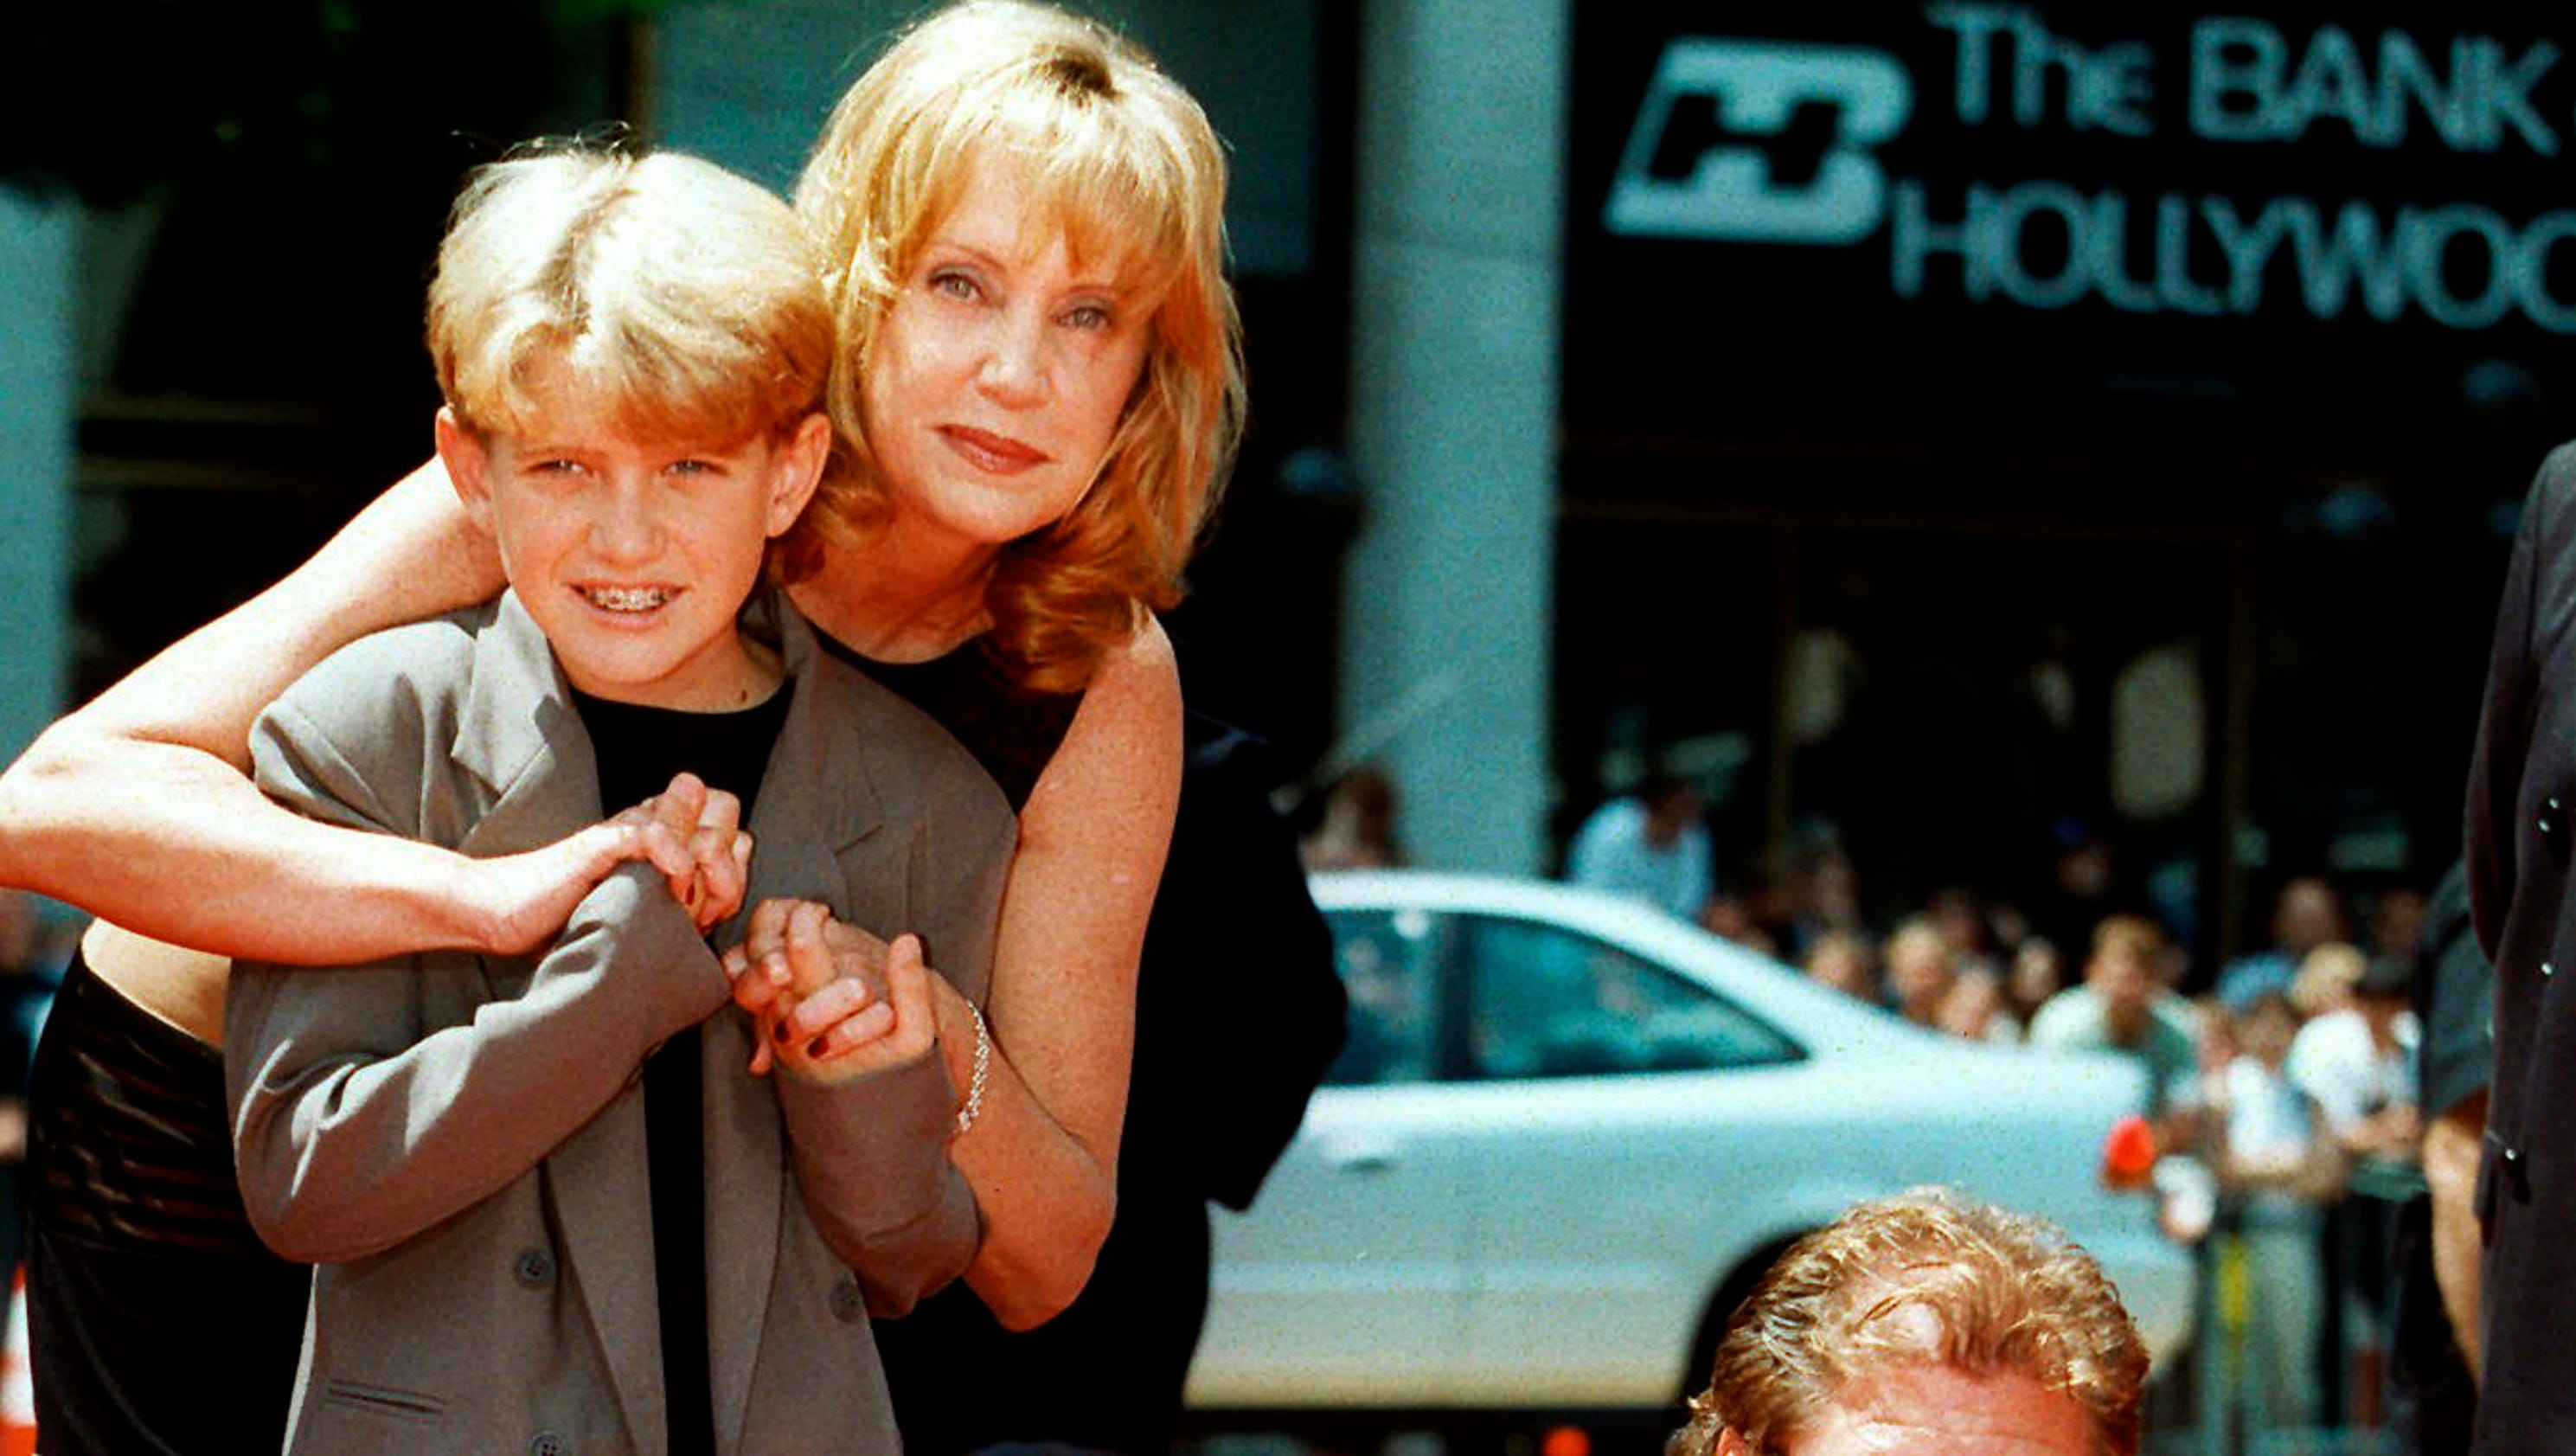 Lethal Weapon\' actress Mary Ellen Trainor dies at 62